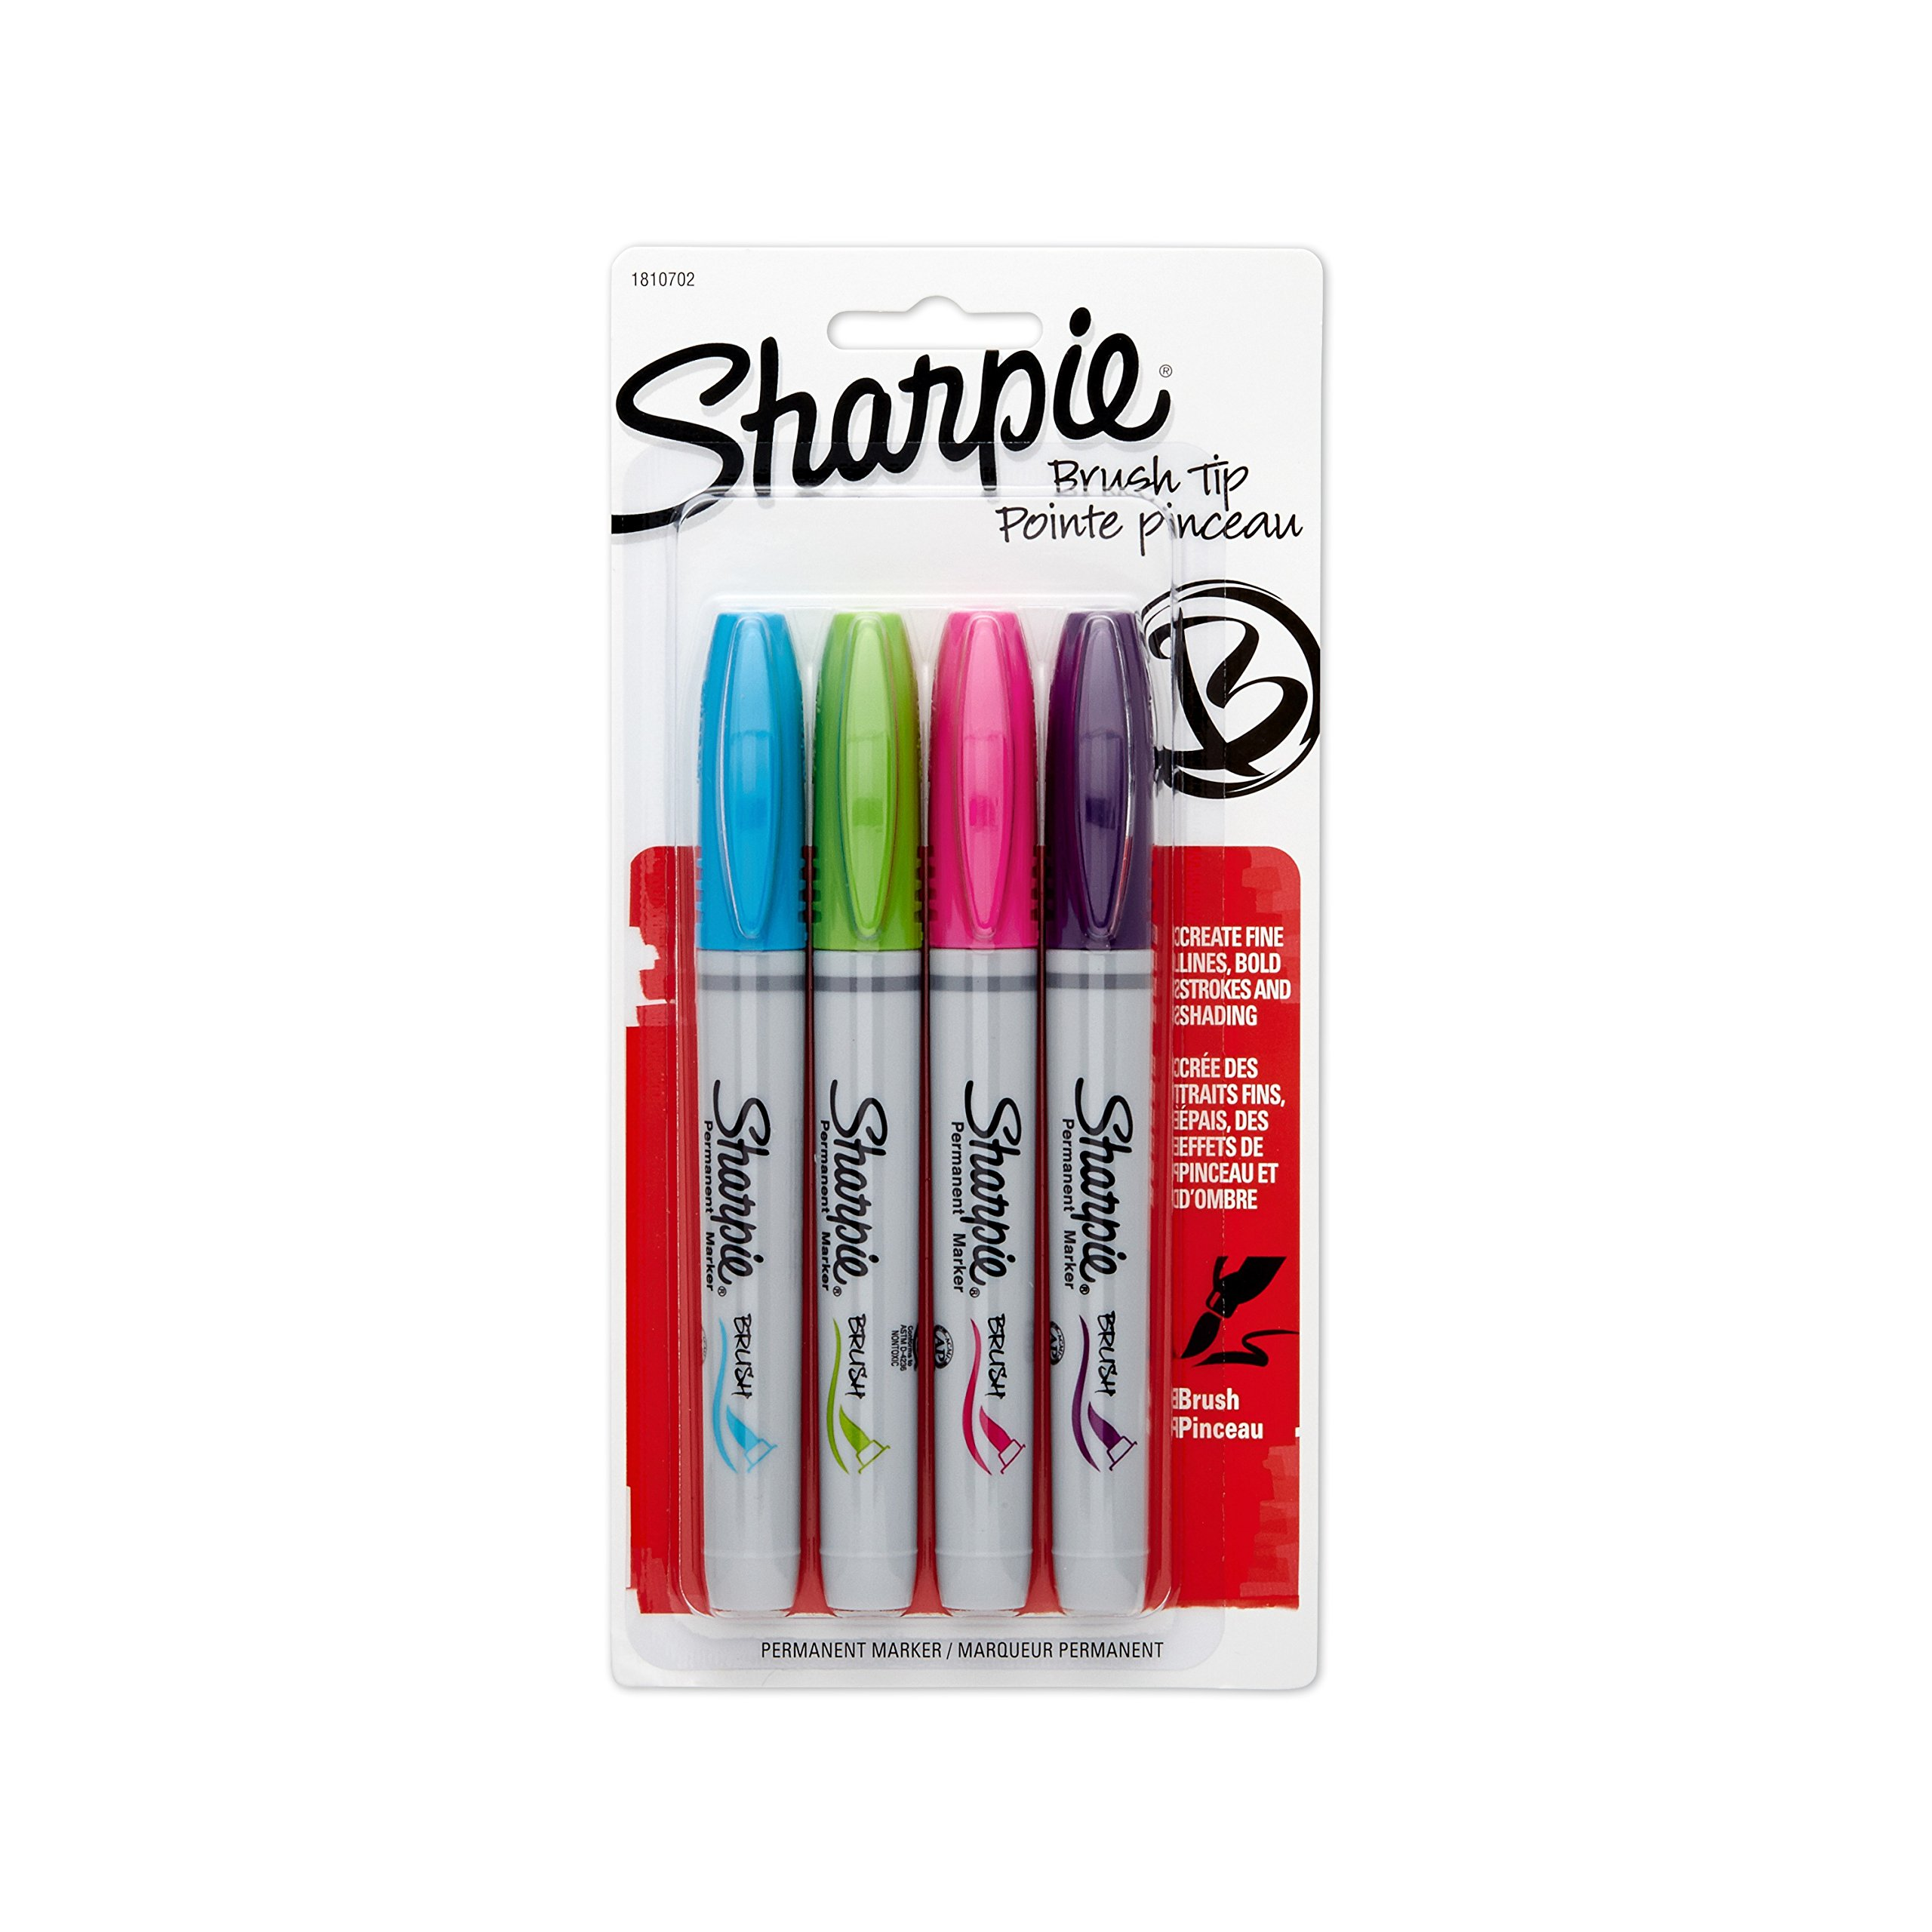 Sharpie 1810702 Brush Tip Permanent Marker, Assorted Colors, 4-Pack